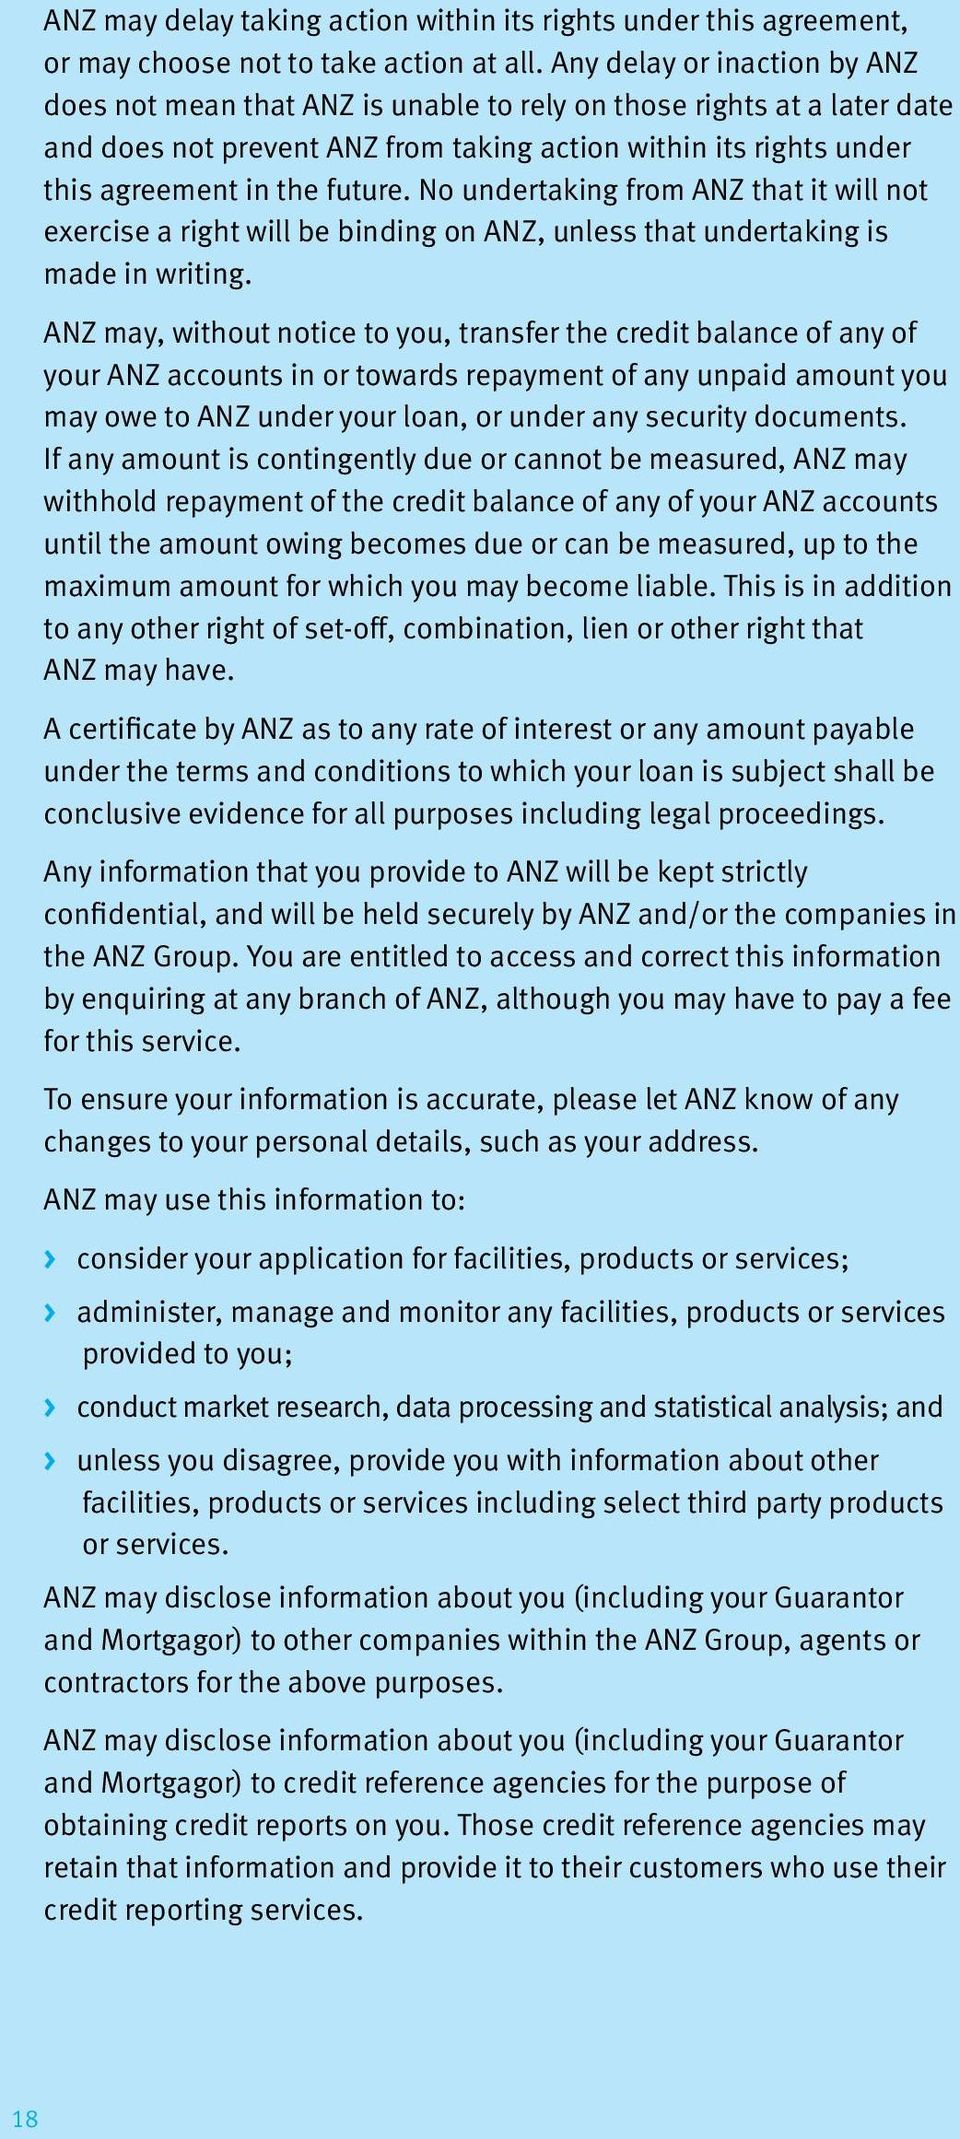 No undertaking from ANZ that it will not exercise a right will be binding on ANZ, unless that undertaking is made in writing.